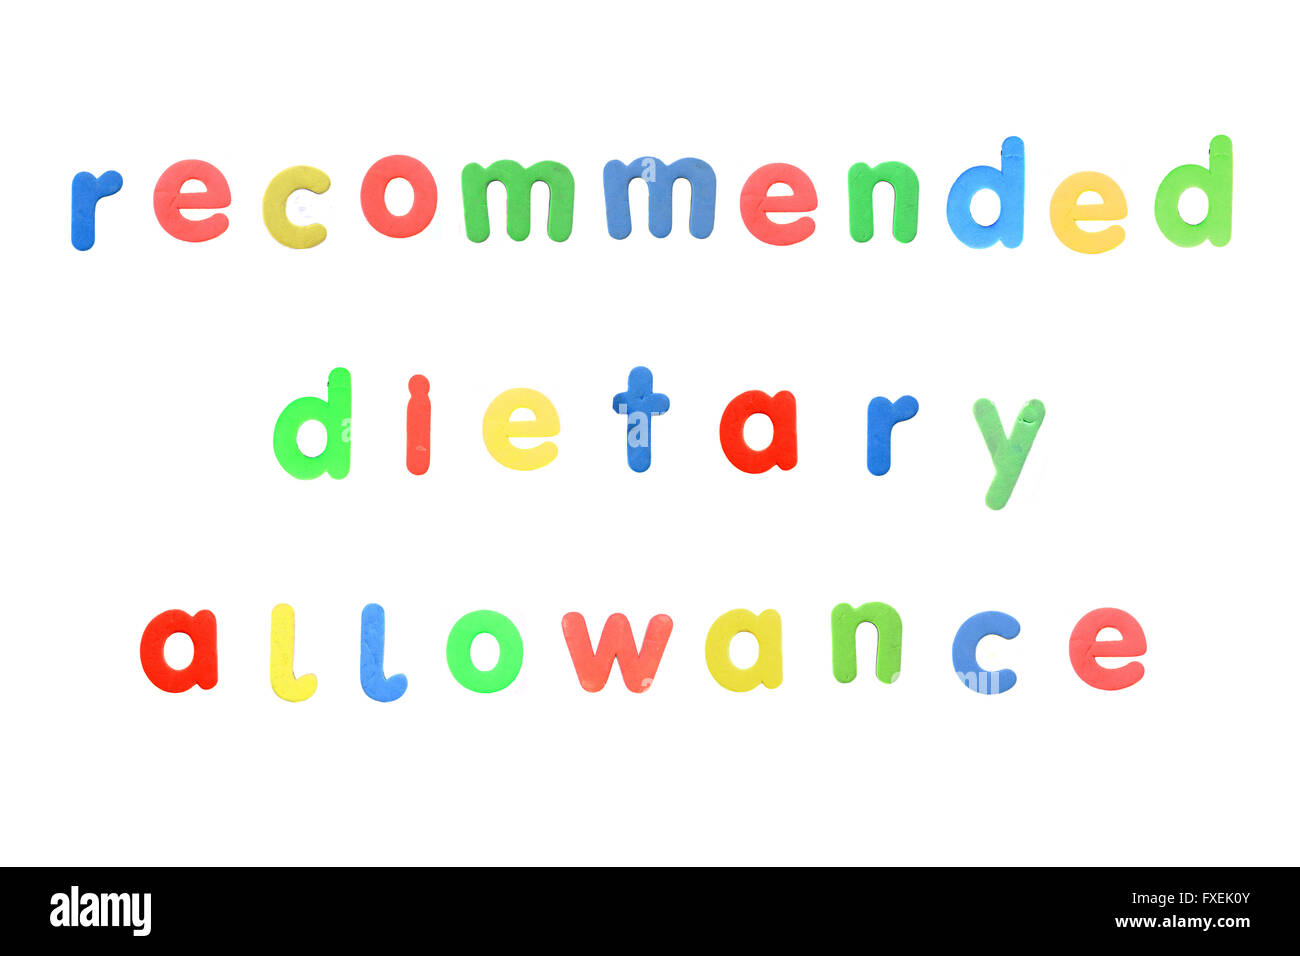 Recommended dietary allowance created from alphabetic fridge magnets photographed against a white background. - Stock Image